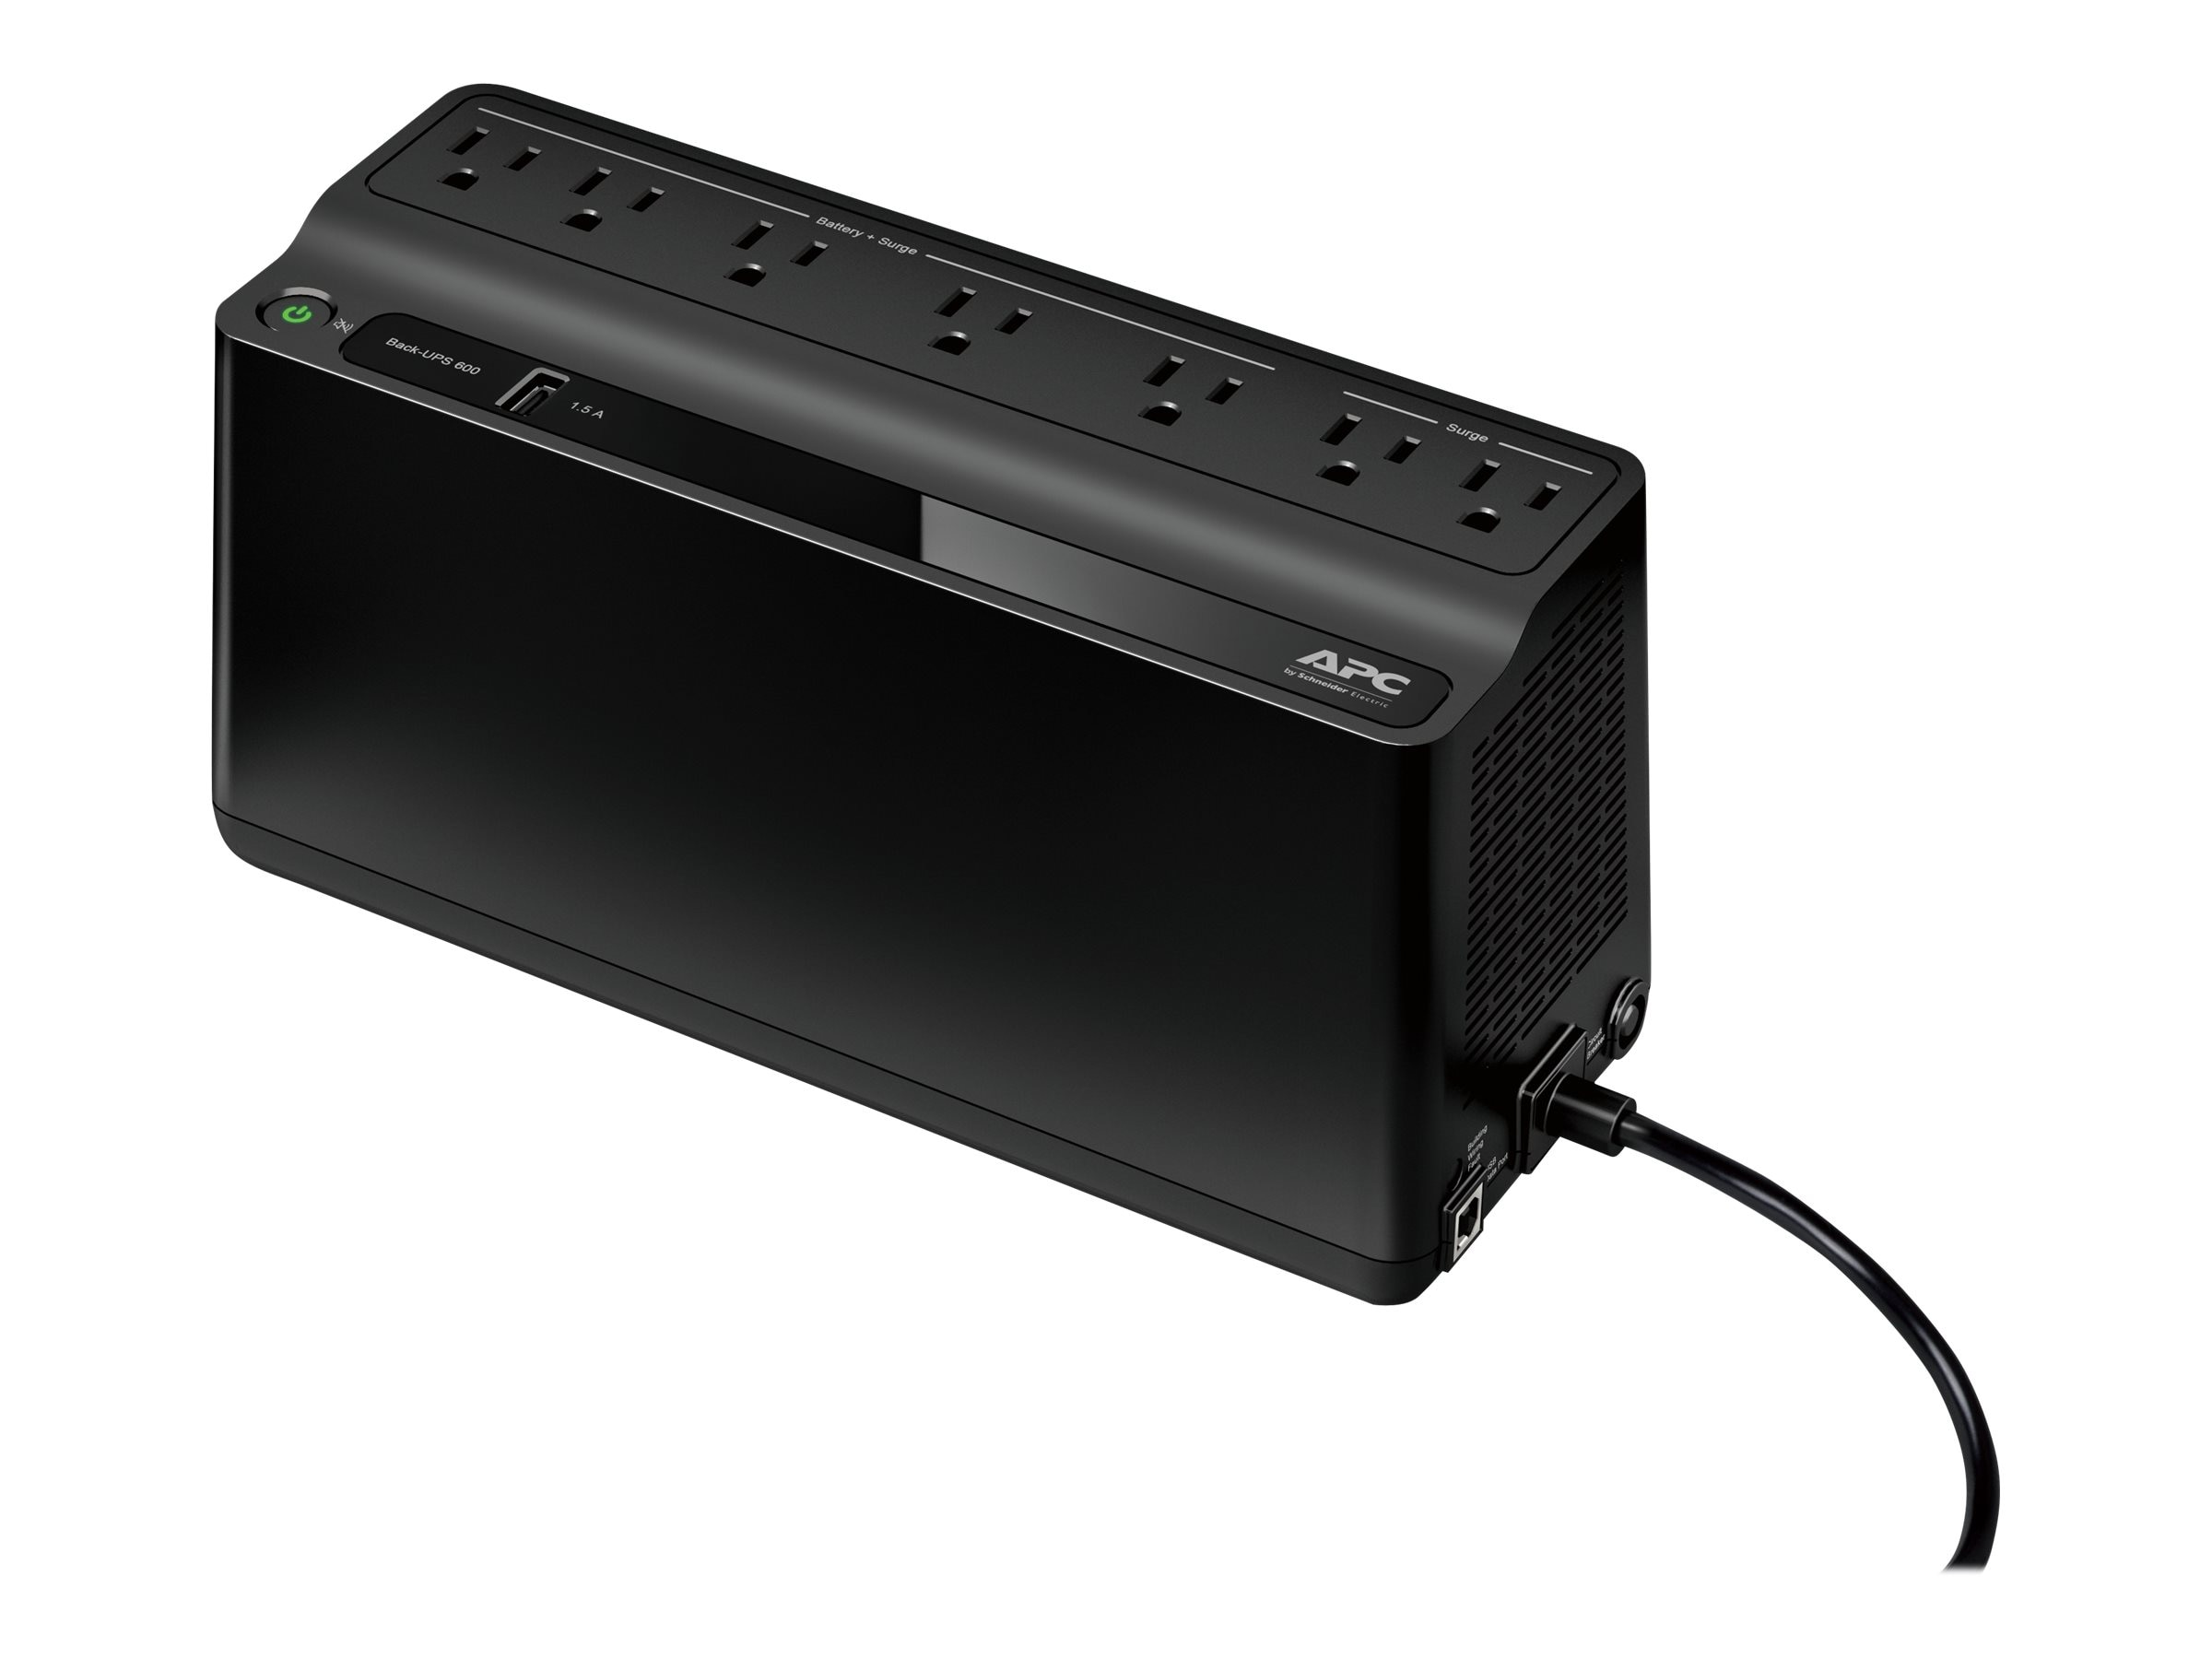 APC Back-UPS 600VA 330W 120V, 5-15P Right-angle Input Plug, (7) 5-15R Outlets, Instant Rebate - Save $3, BE600M1